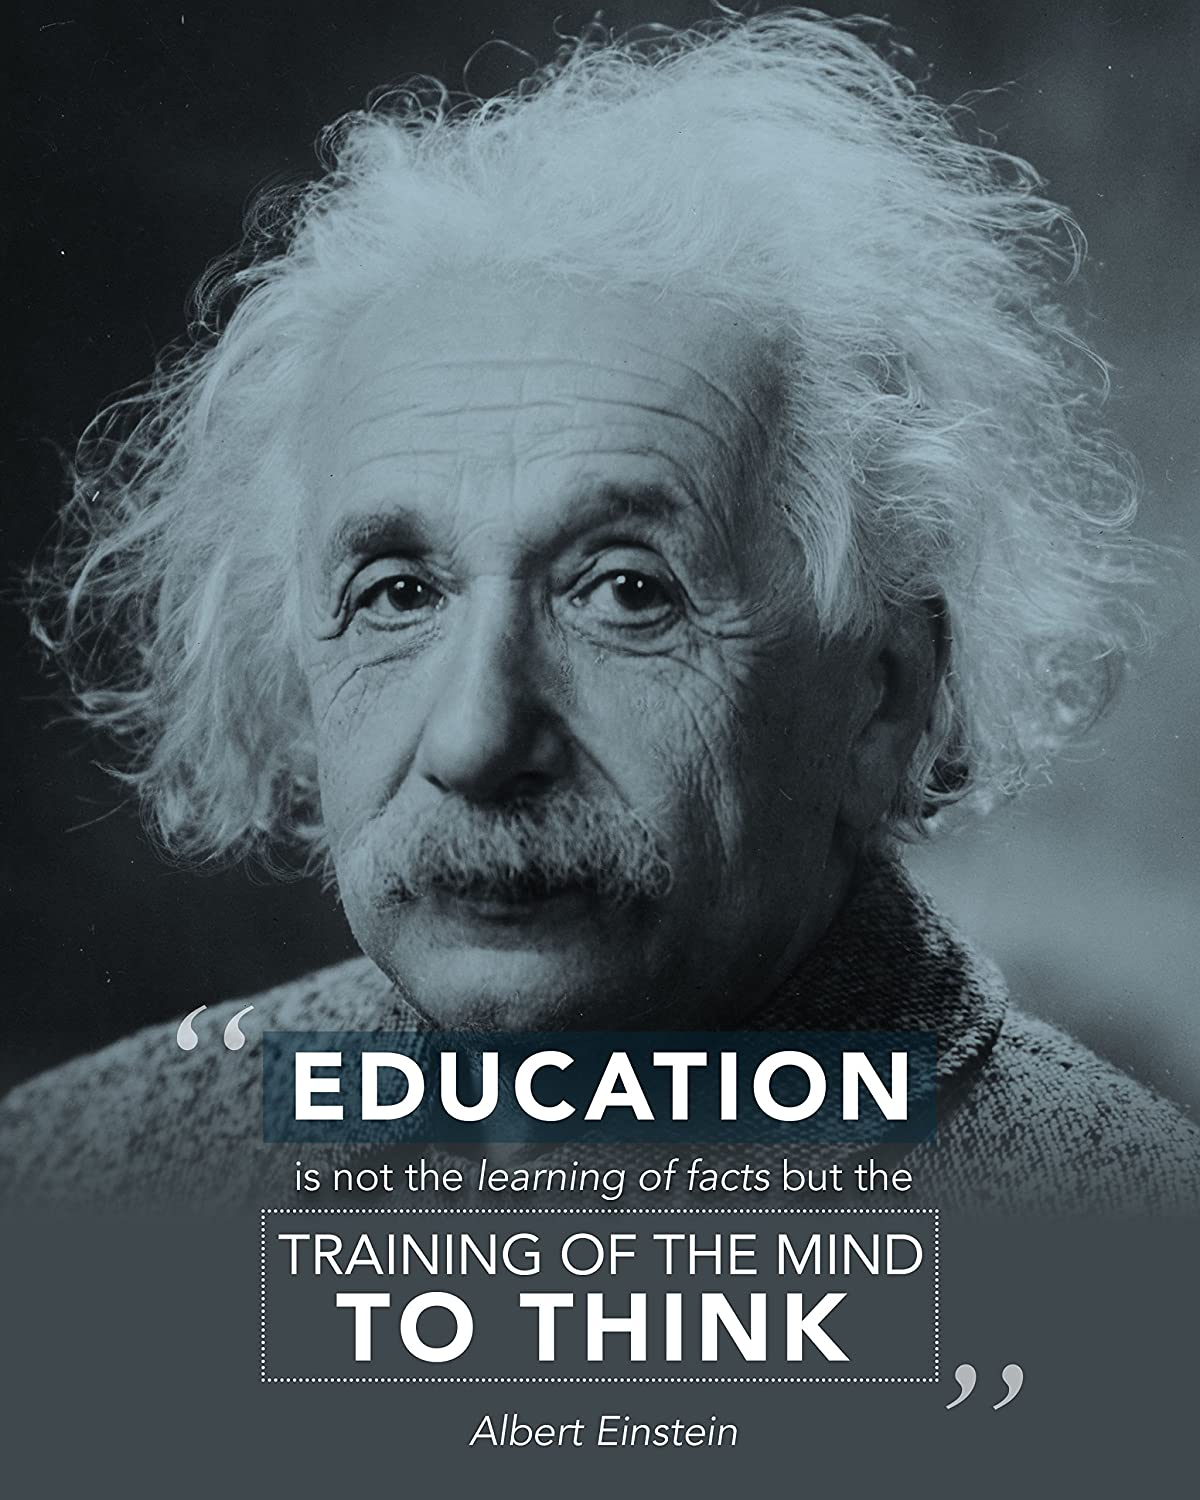 Amazon Com Albert Einstein Quote Education Is Motivational Poster Print Picture Or Framed Wall Art Decor Inspirational Quotes Collection Graduation Holidays 8x10 Unframed Photo Posters Prints